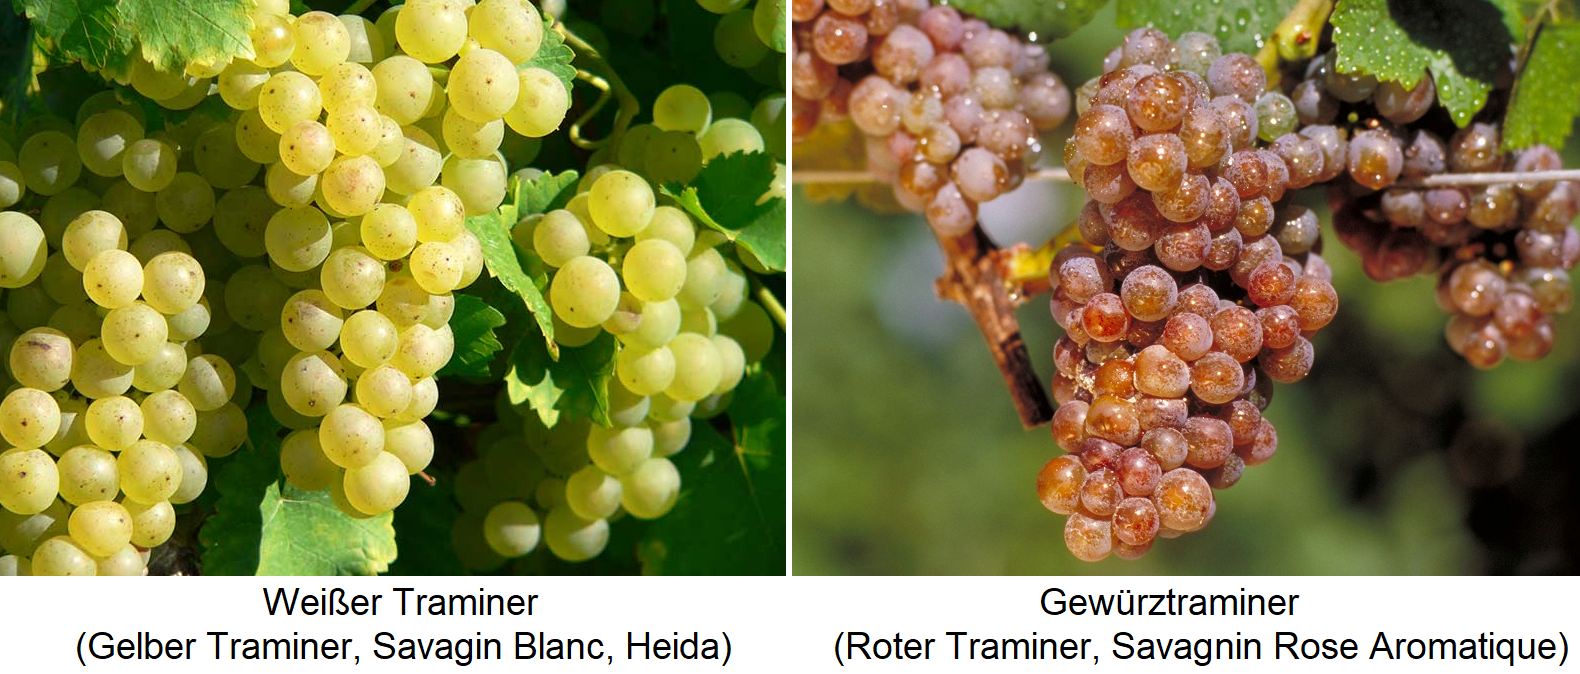 Traminer - White / Yellow Traminer (Savagnin Blanc) and Gewürztraminer